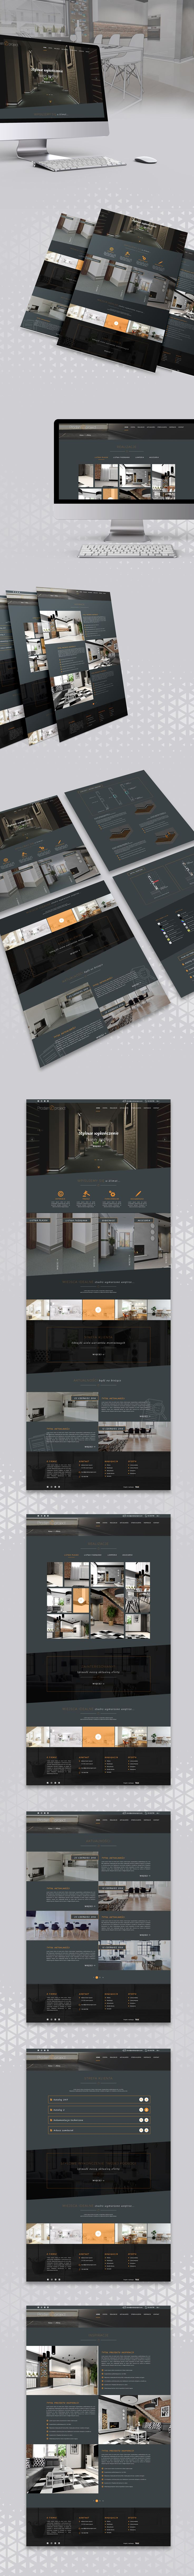 Responsive website for interior finishing company check out more project http://wiwiagency.com/portfolio/